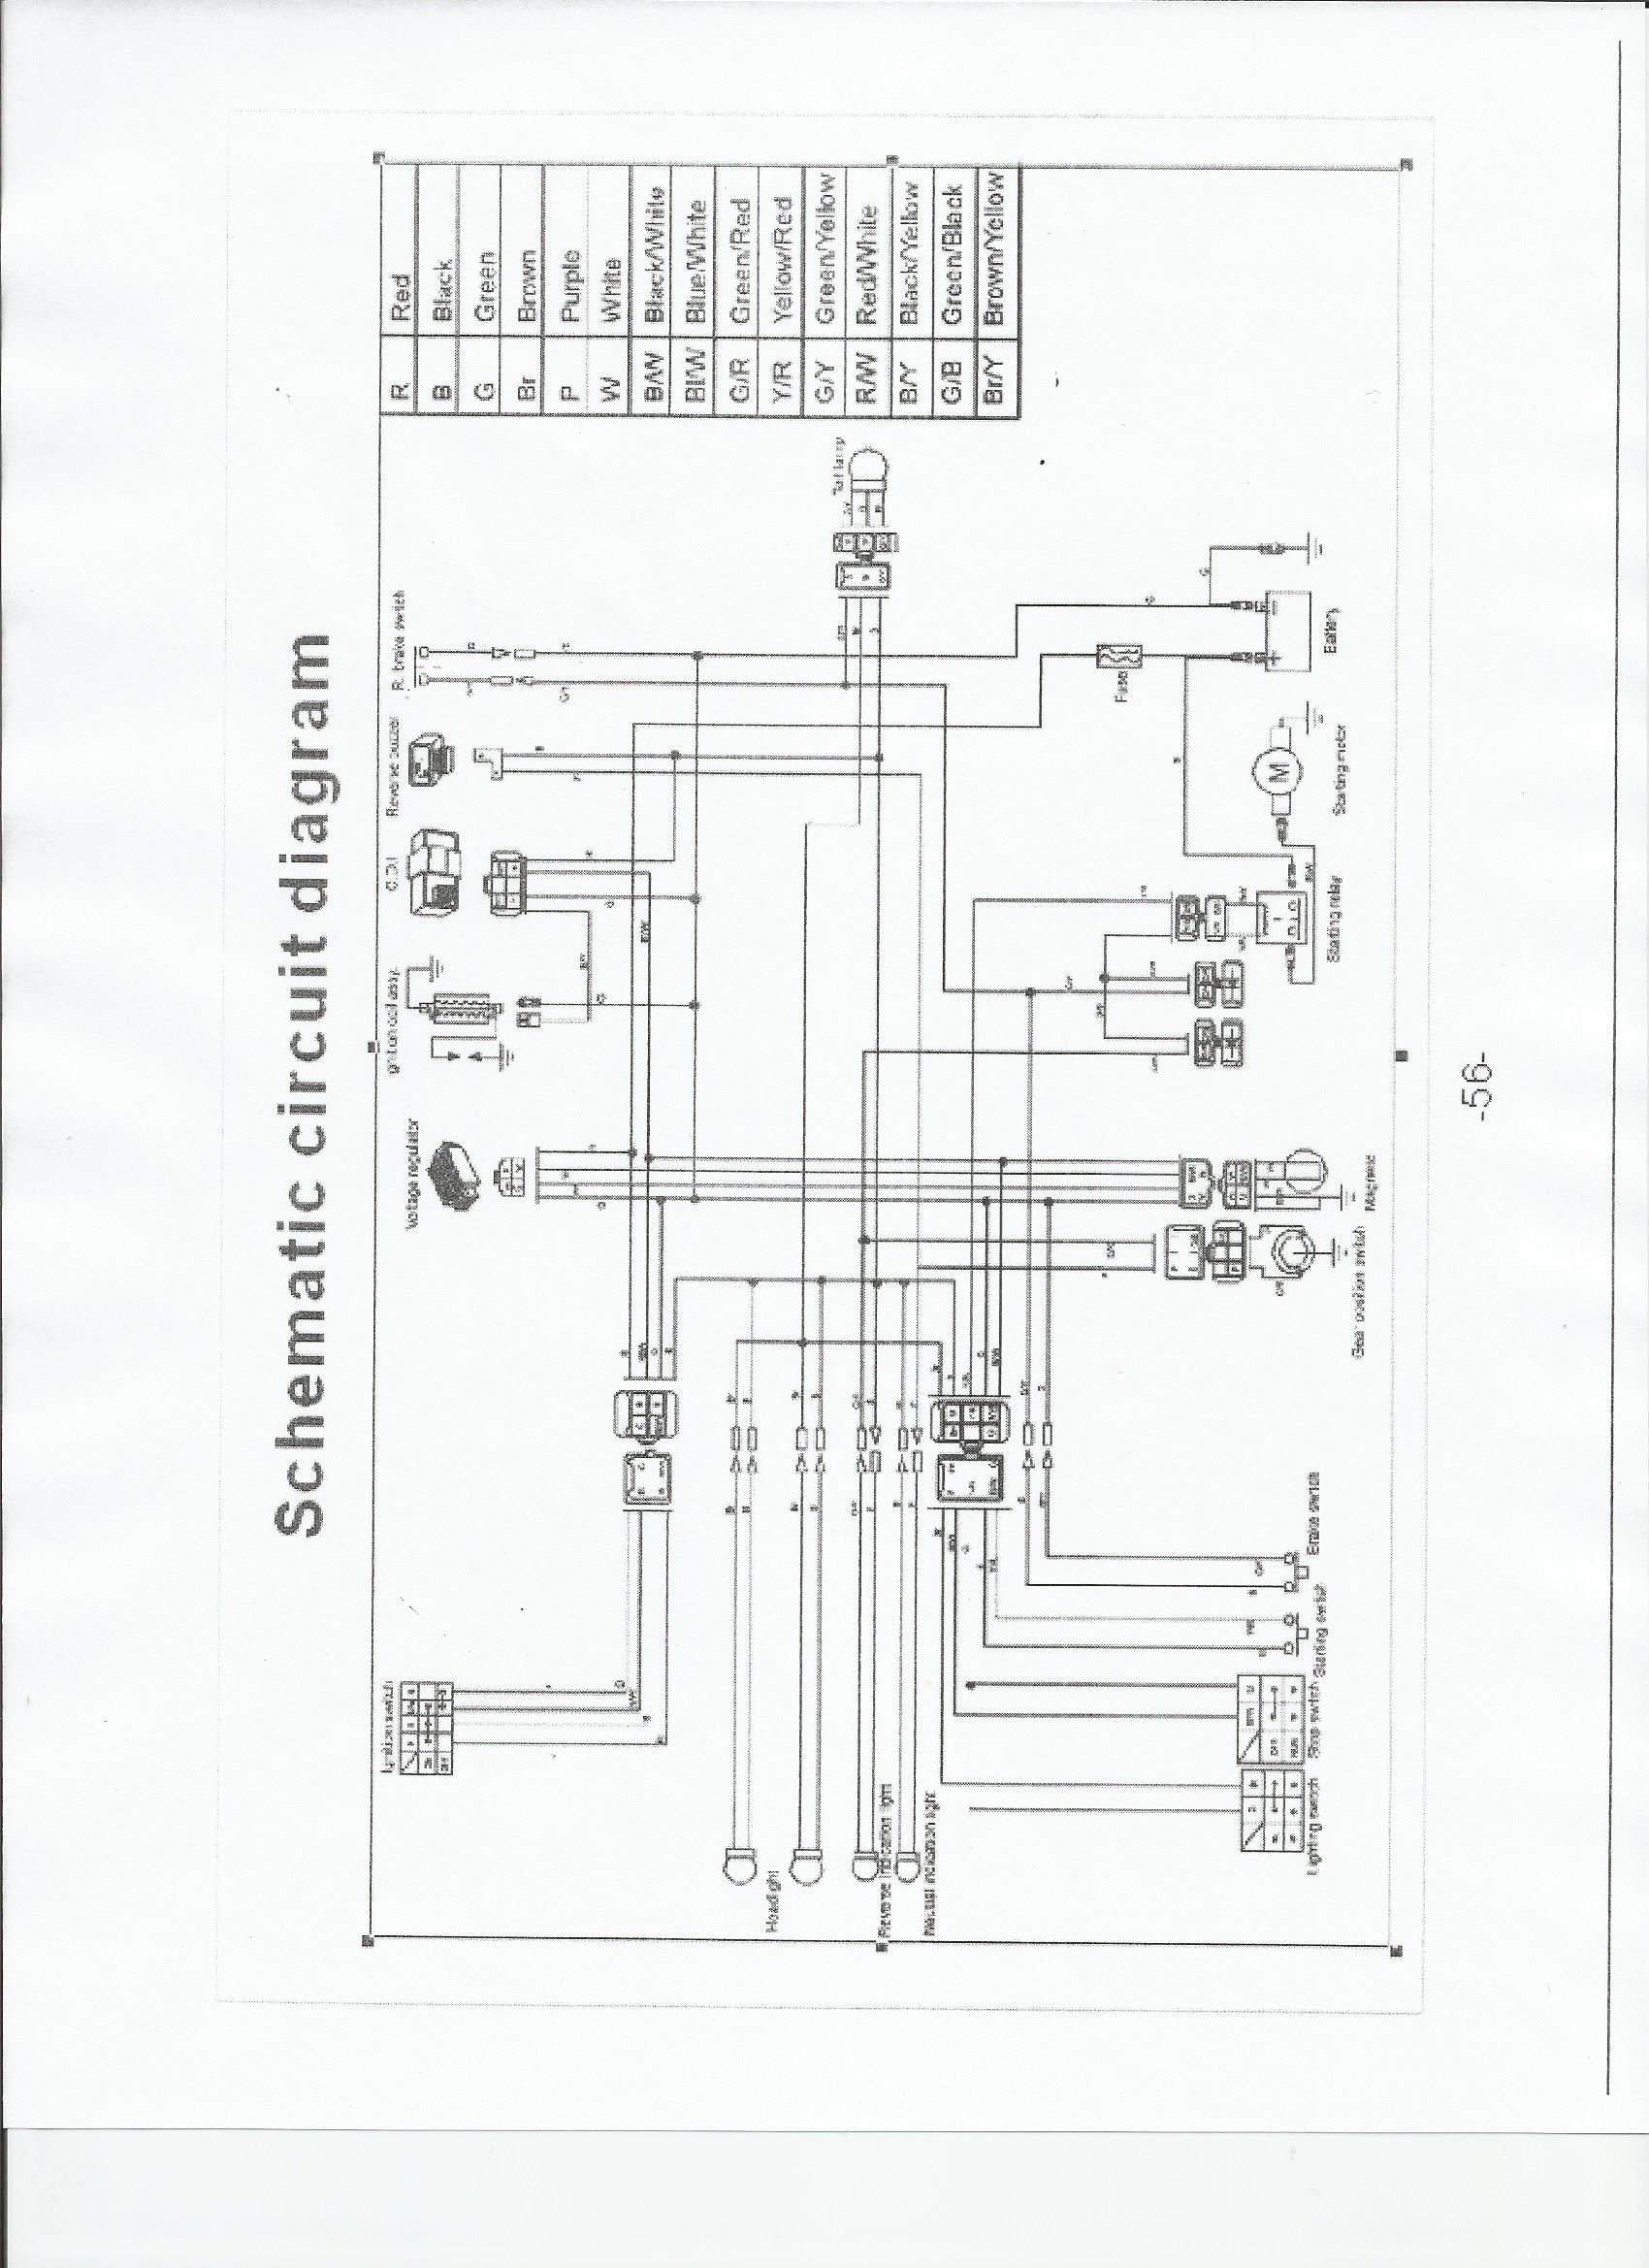 tao tao wiring schematic taotao mini and youth atv wiring schematic familygokarts support tao tao 110 atv wiring diagram at bayanpartner.co